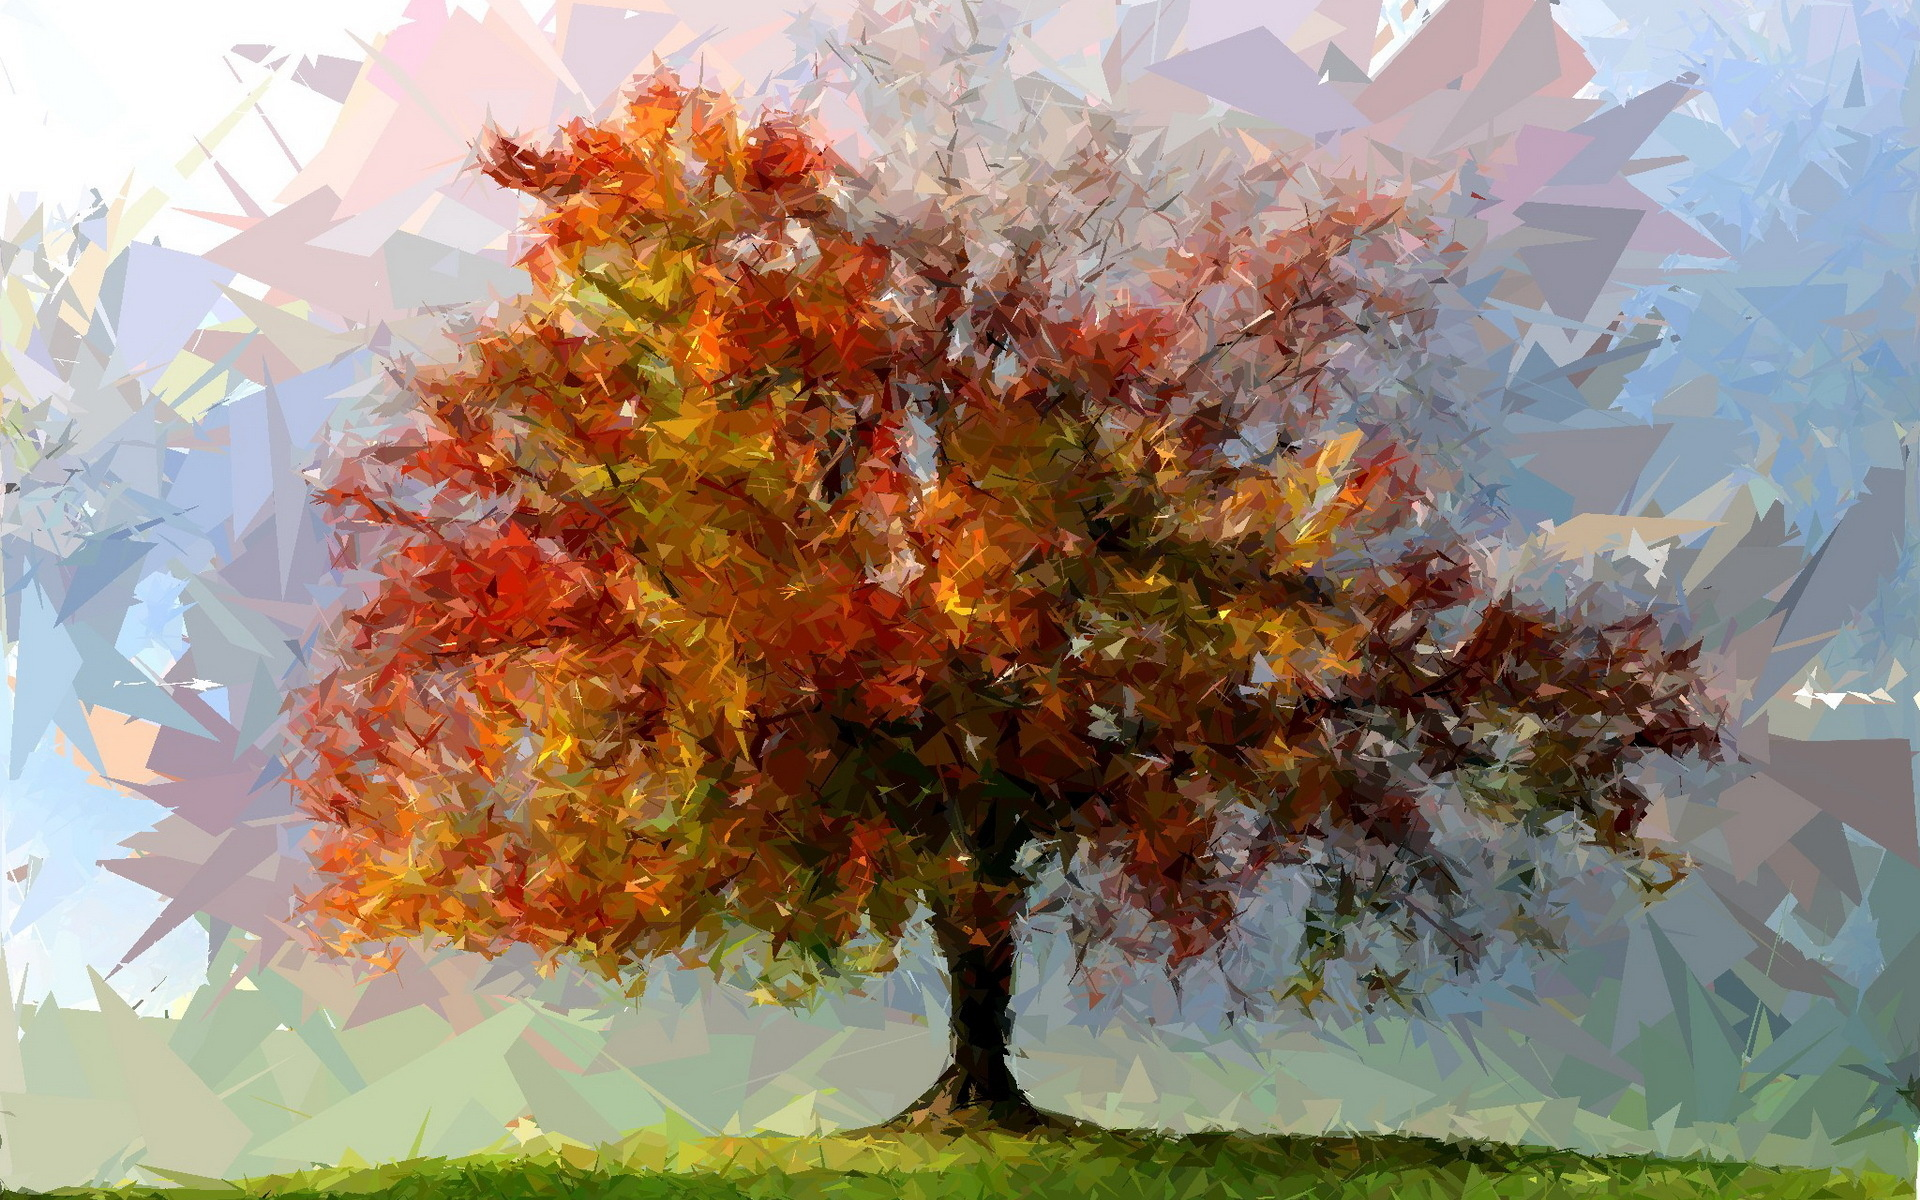 1920x1200 Nature Tree Landscape Art Artwork Artistic Wallpapers